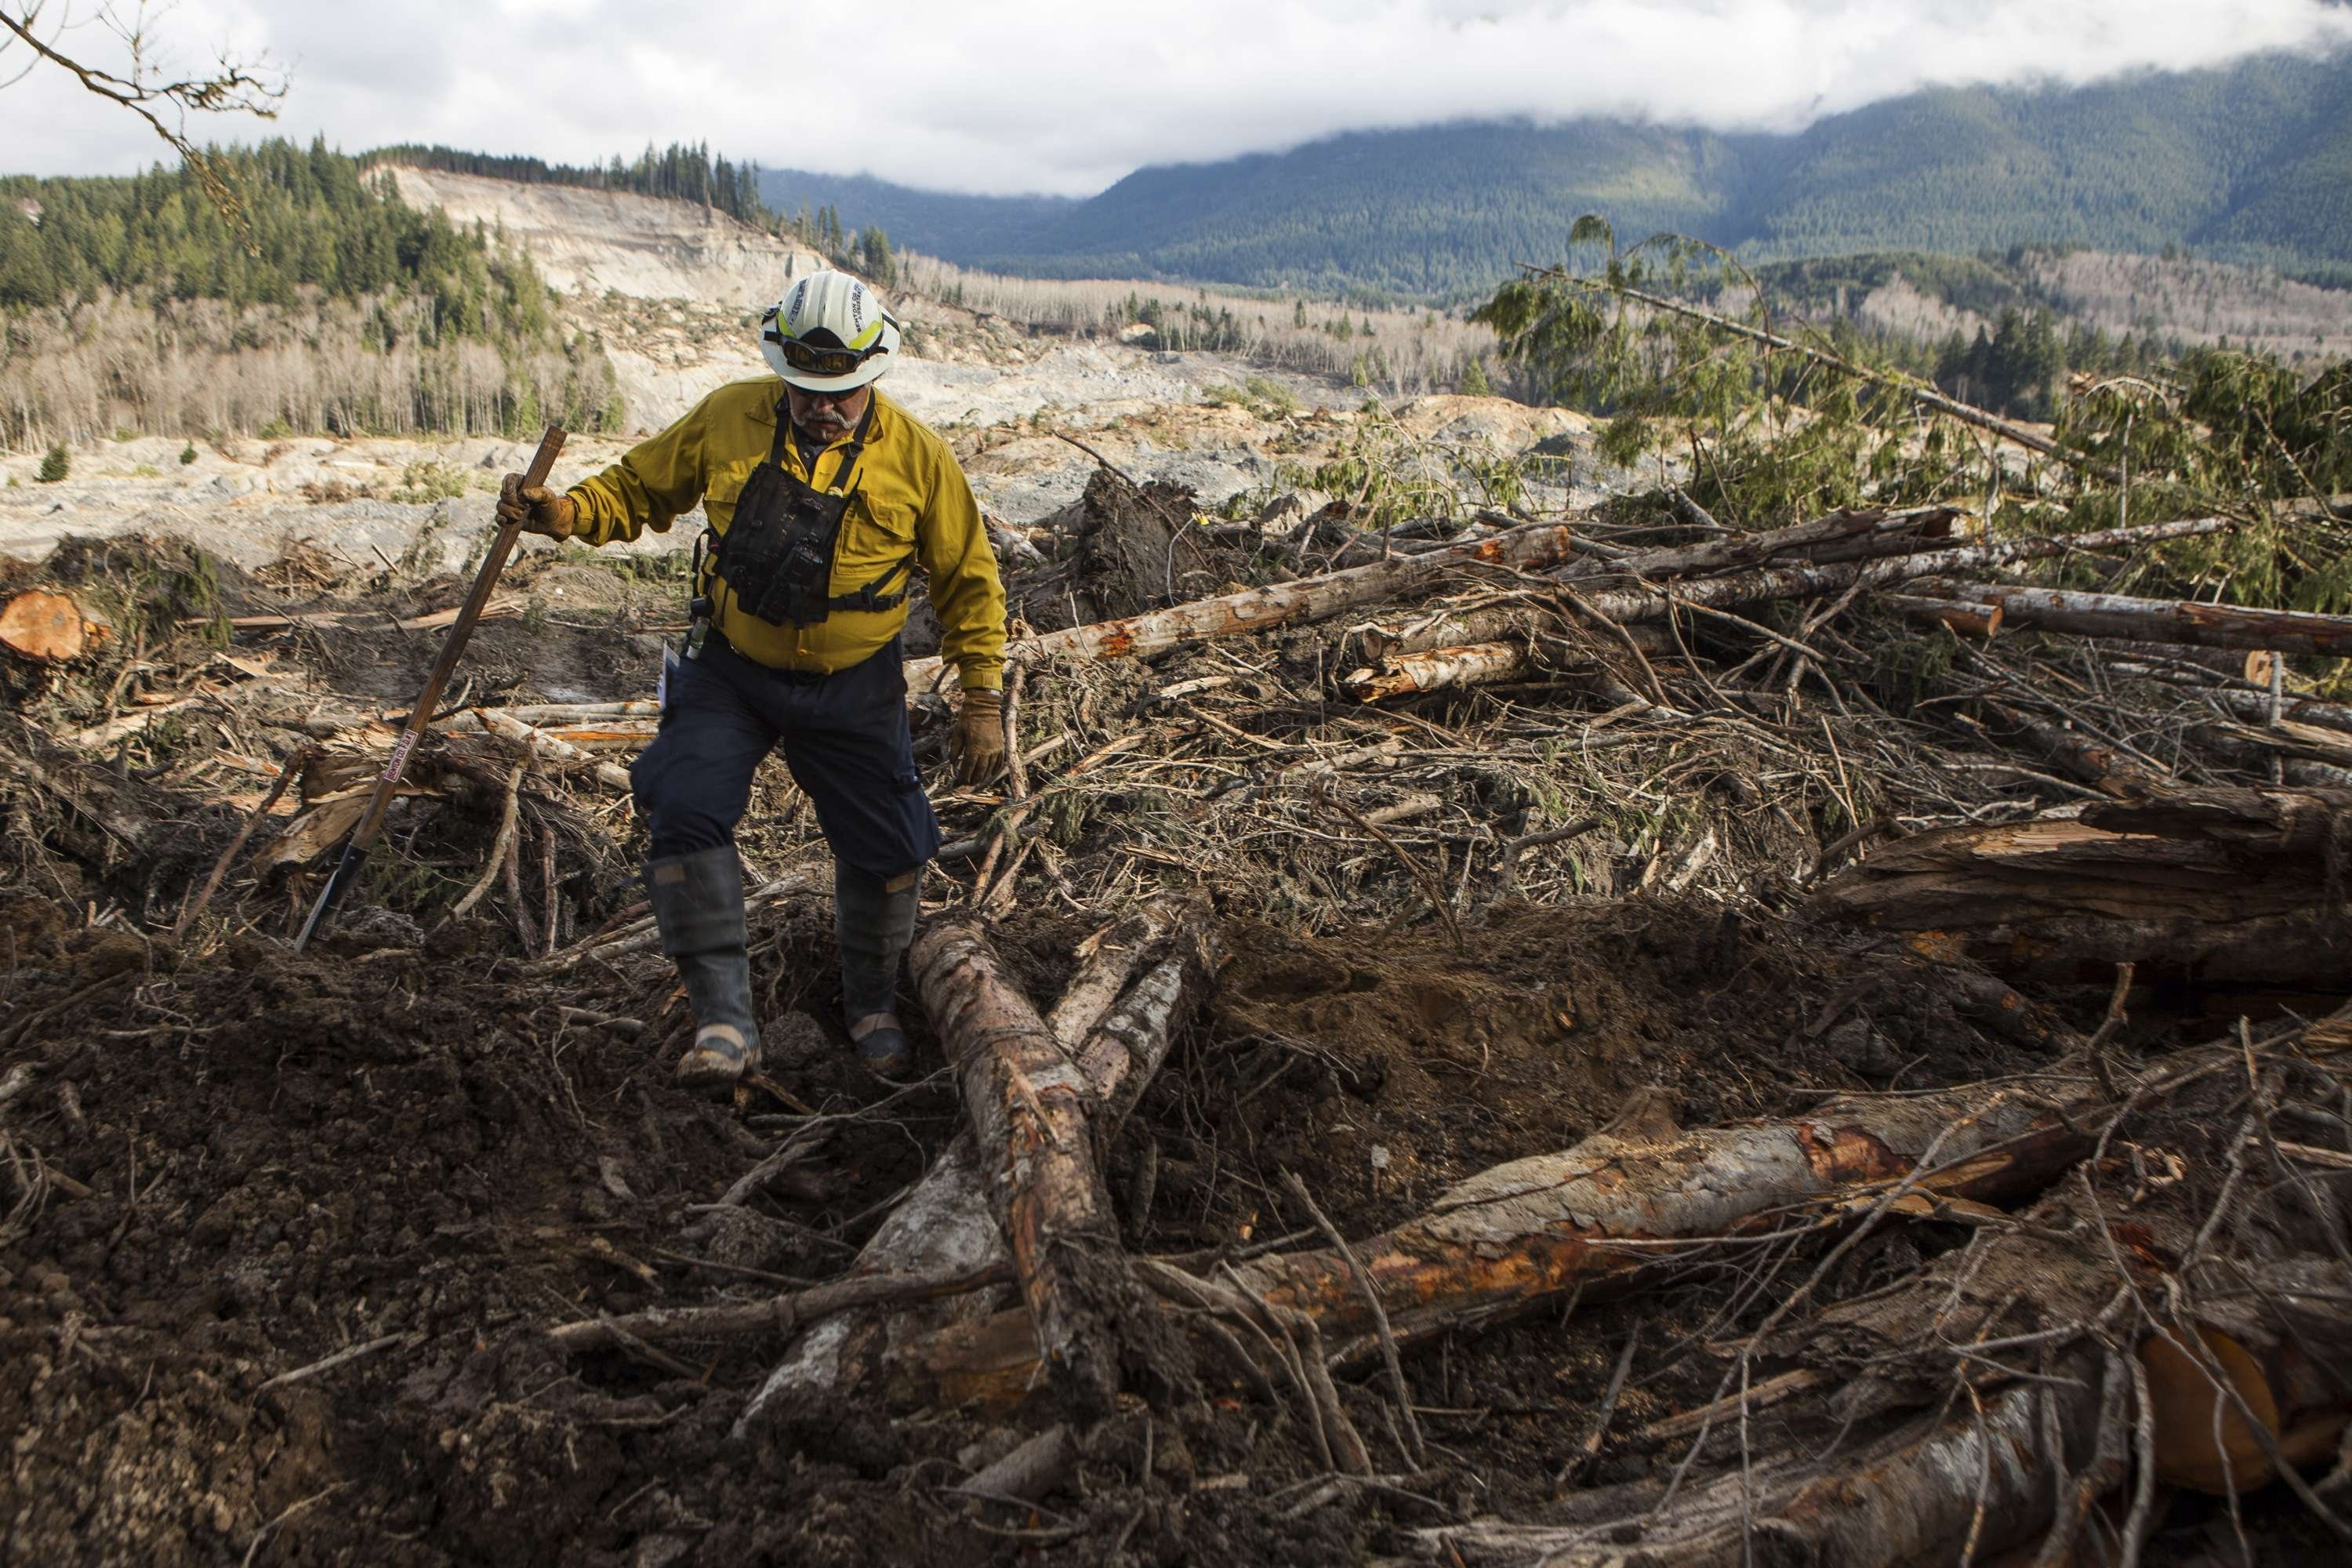 Benton County Assistant Fire Chief Jack Coats makes his way over debris left by a mudslide in Oso, Wash., April 2, 2014.